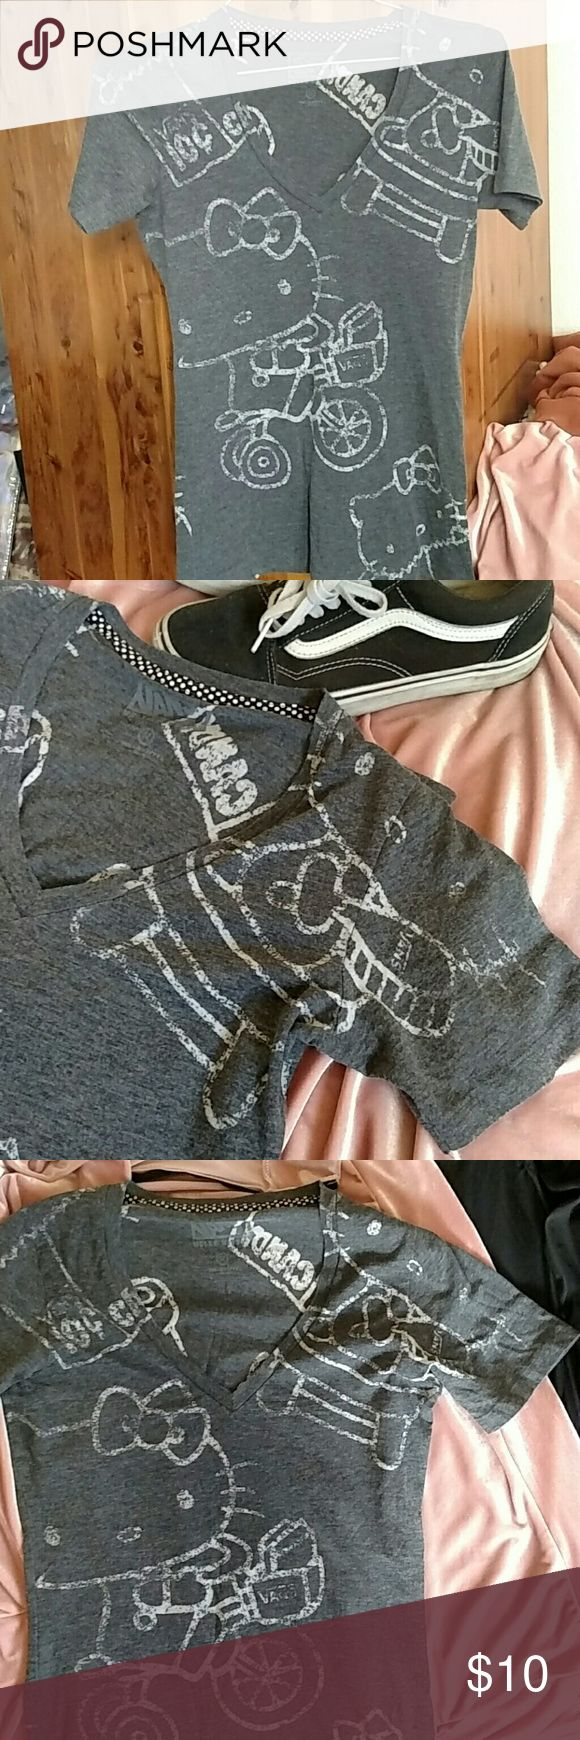 NWOT Vans Hello Kitty Shirt Super comfy and casual Hello Kitty collaboration with Vans T-shirt. V-neck. Size Medium. Stretchy and nice soft material. New without tags. Grey and white. Never worn. Vans Tops Tees - Short Sleeve